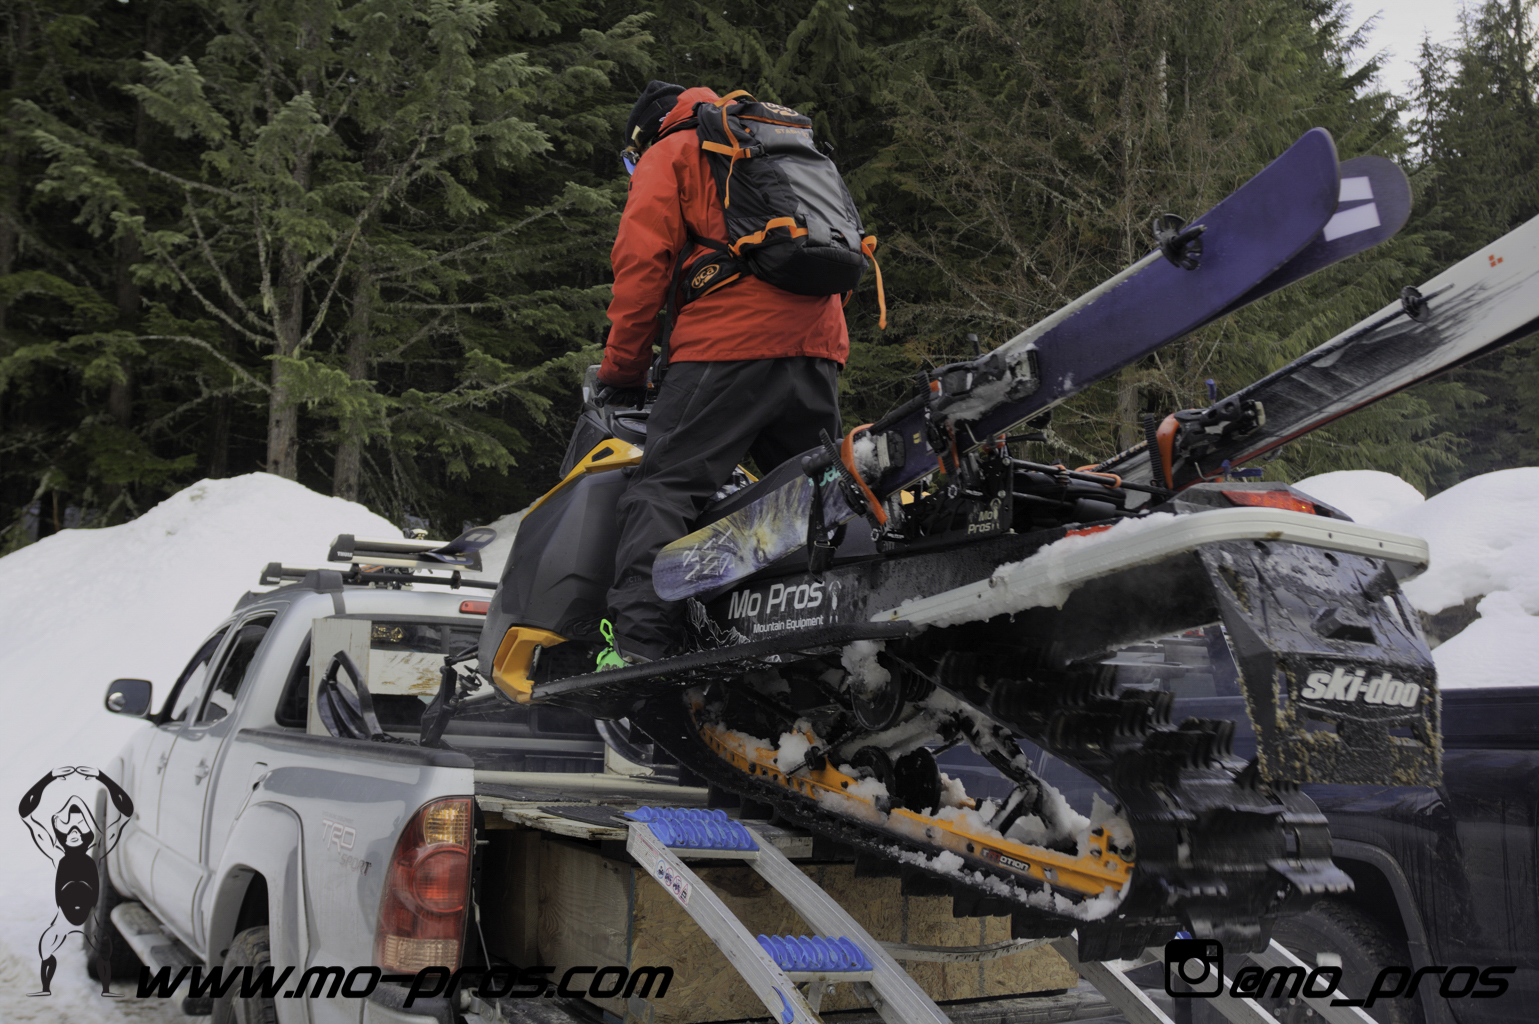 105_Ski_Snowbike_Timbersled Rack_Tsaina Rack_CFR rack_Cheetah Factory Racing_gas Rack_Gear_Gun Rack_LinQ Snowboard Ski_Snowboard rack_snowboard_Snowboarding_snowmobile bag_Snowmobile_timbersled bag_T.jpg